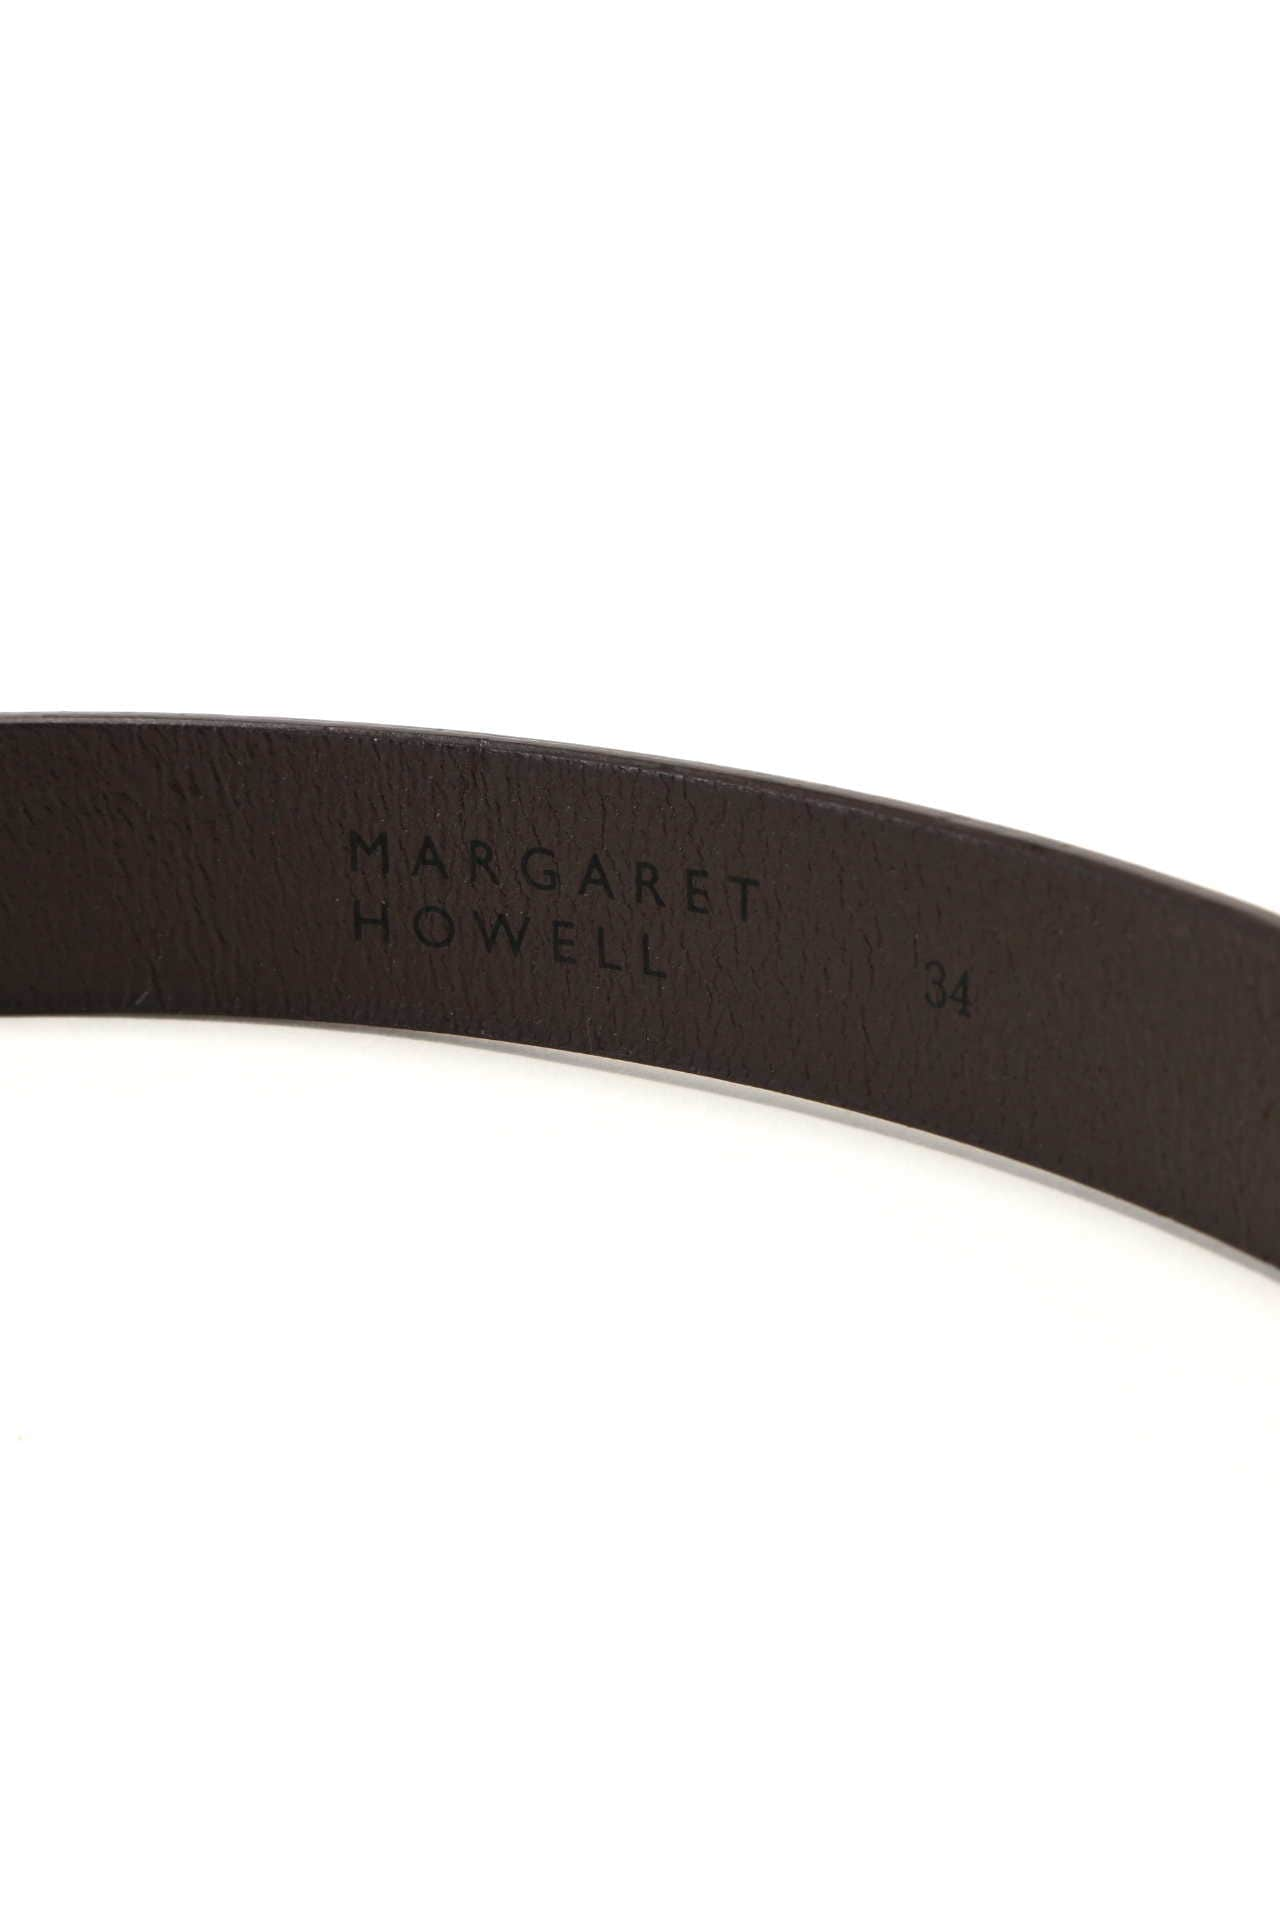 BRIDLE LEATHER5